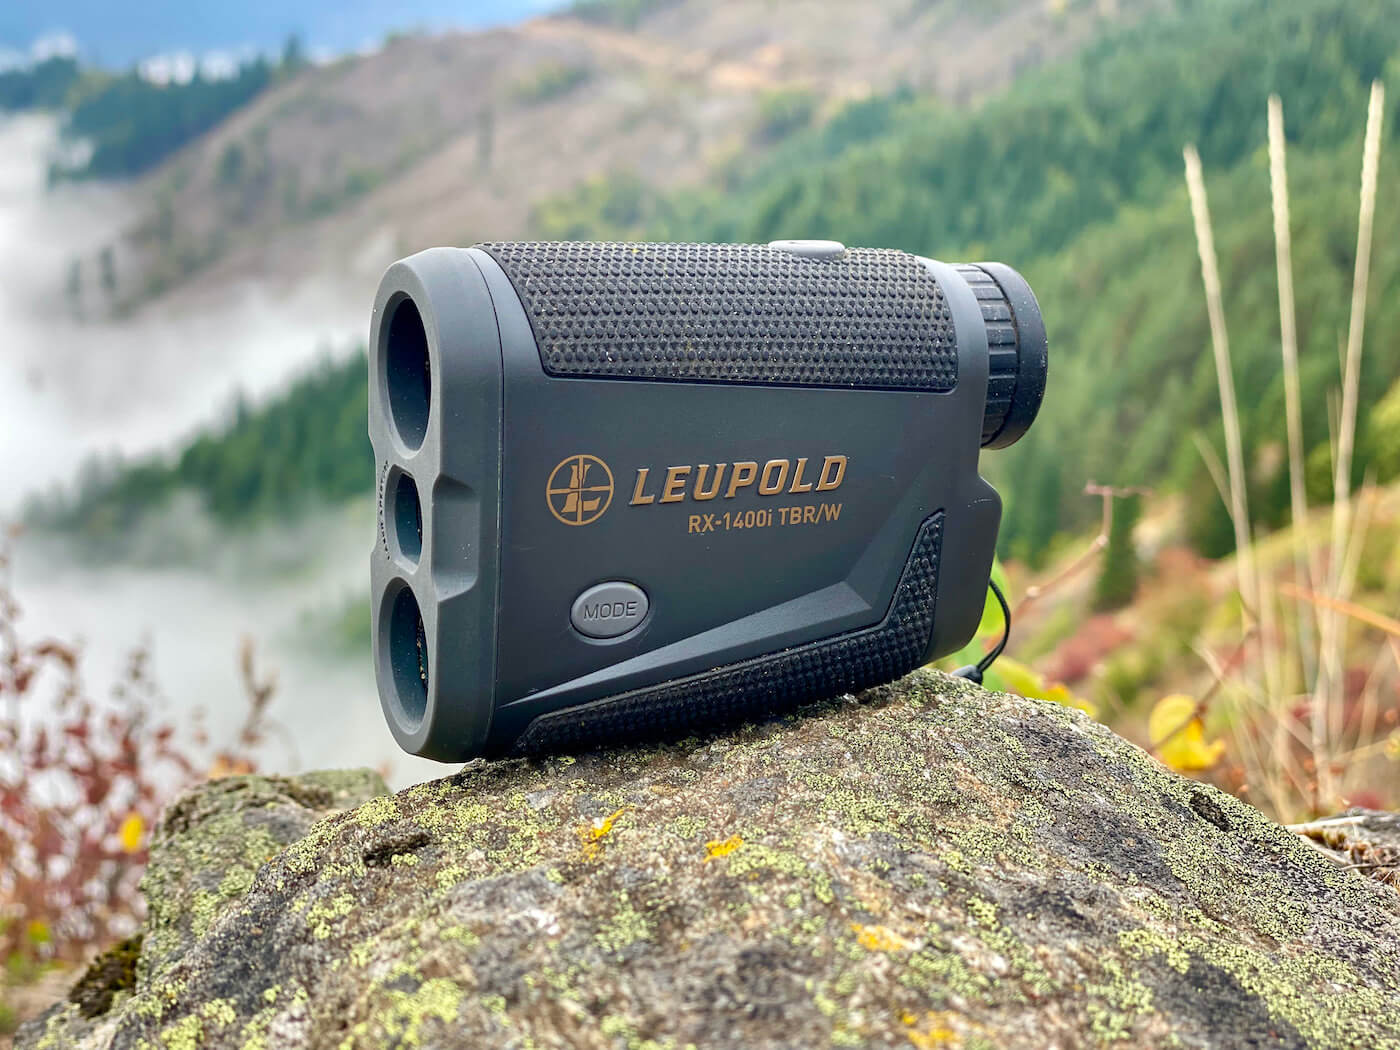 This review photo shows the Leupold RX-1400i TBR/W Rangefinder outside on a rock.